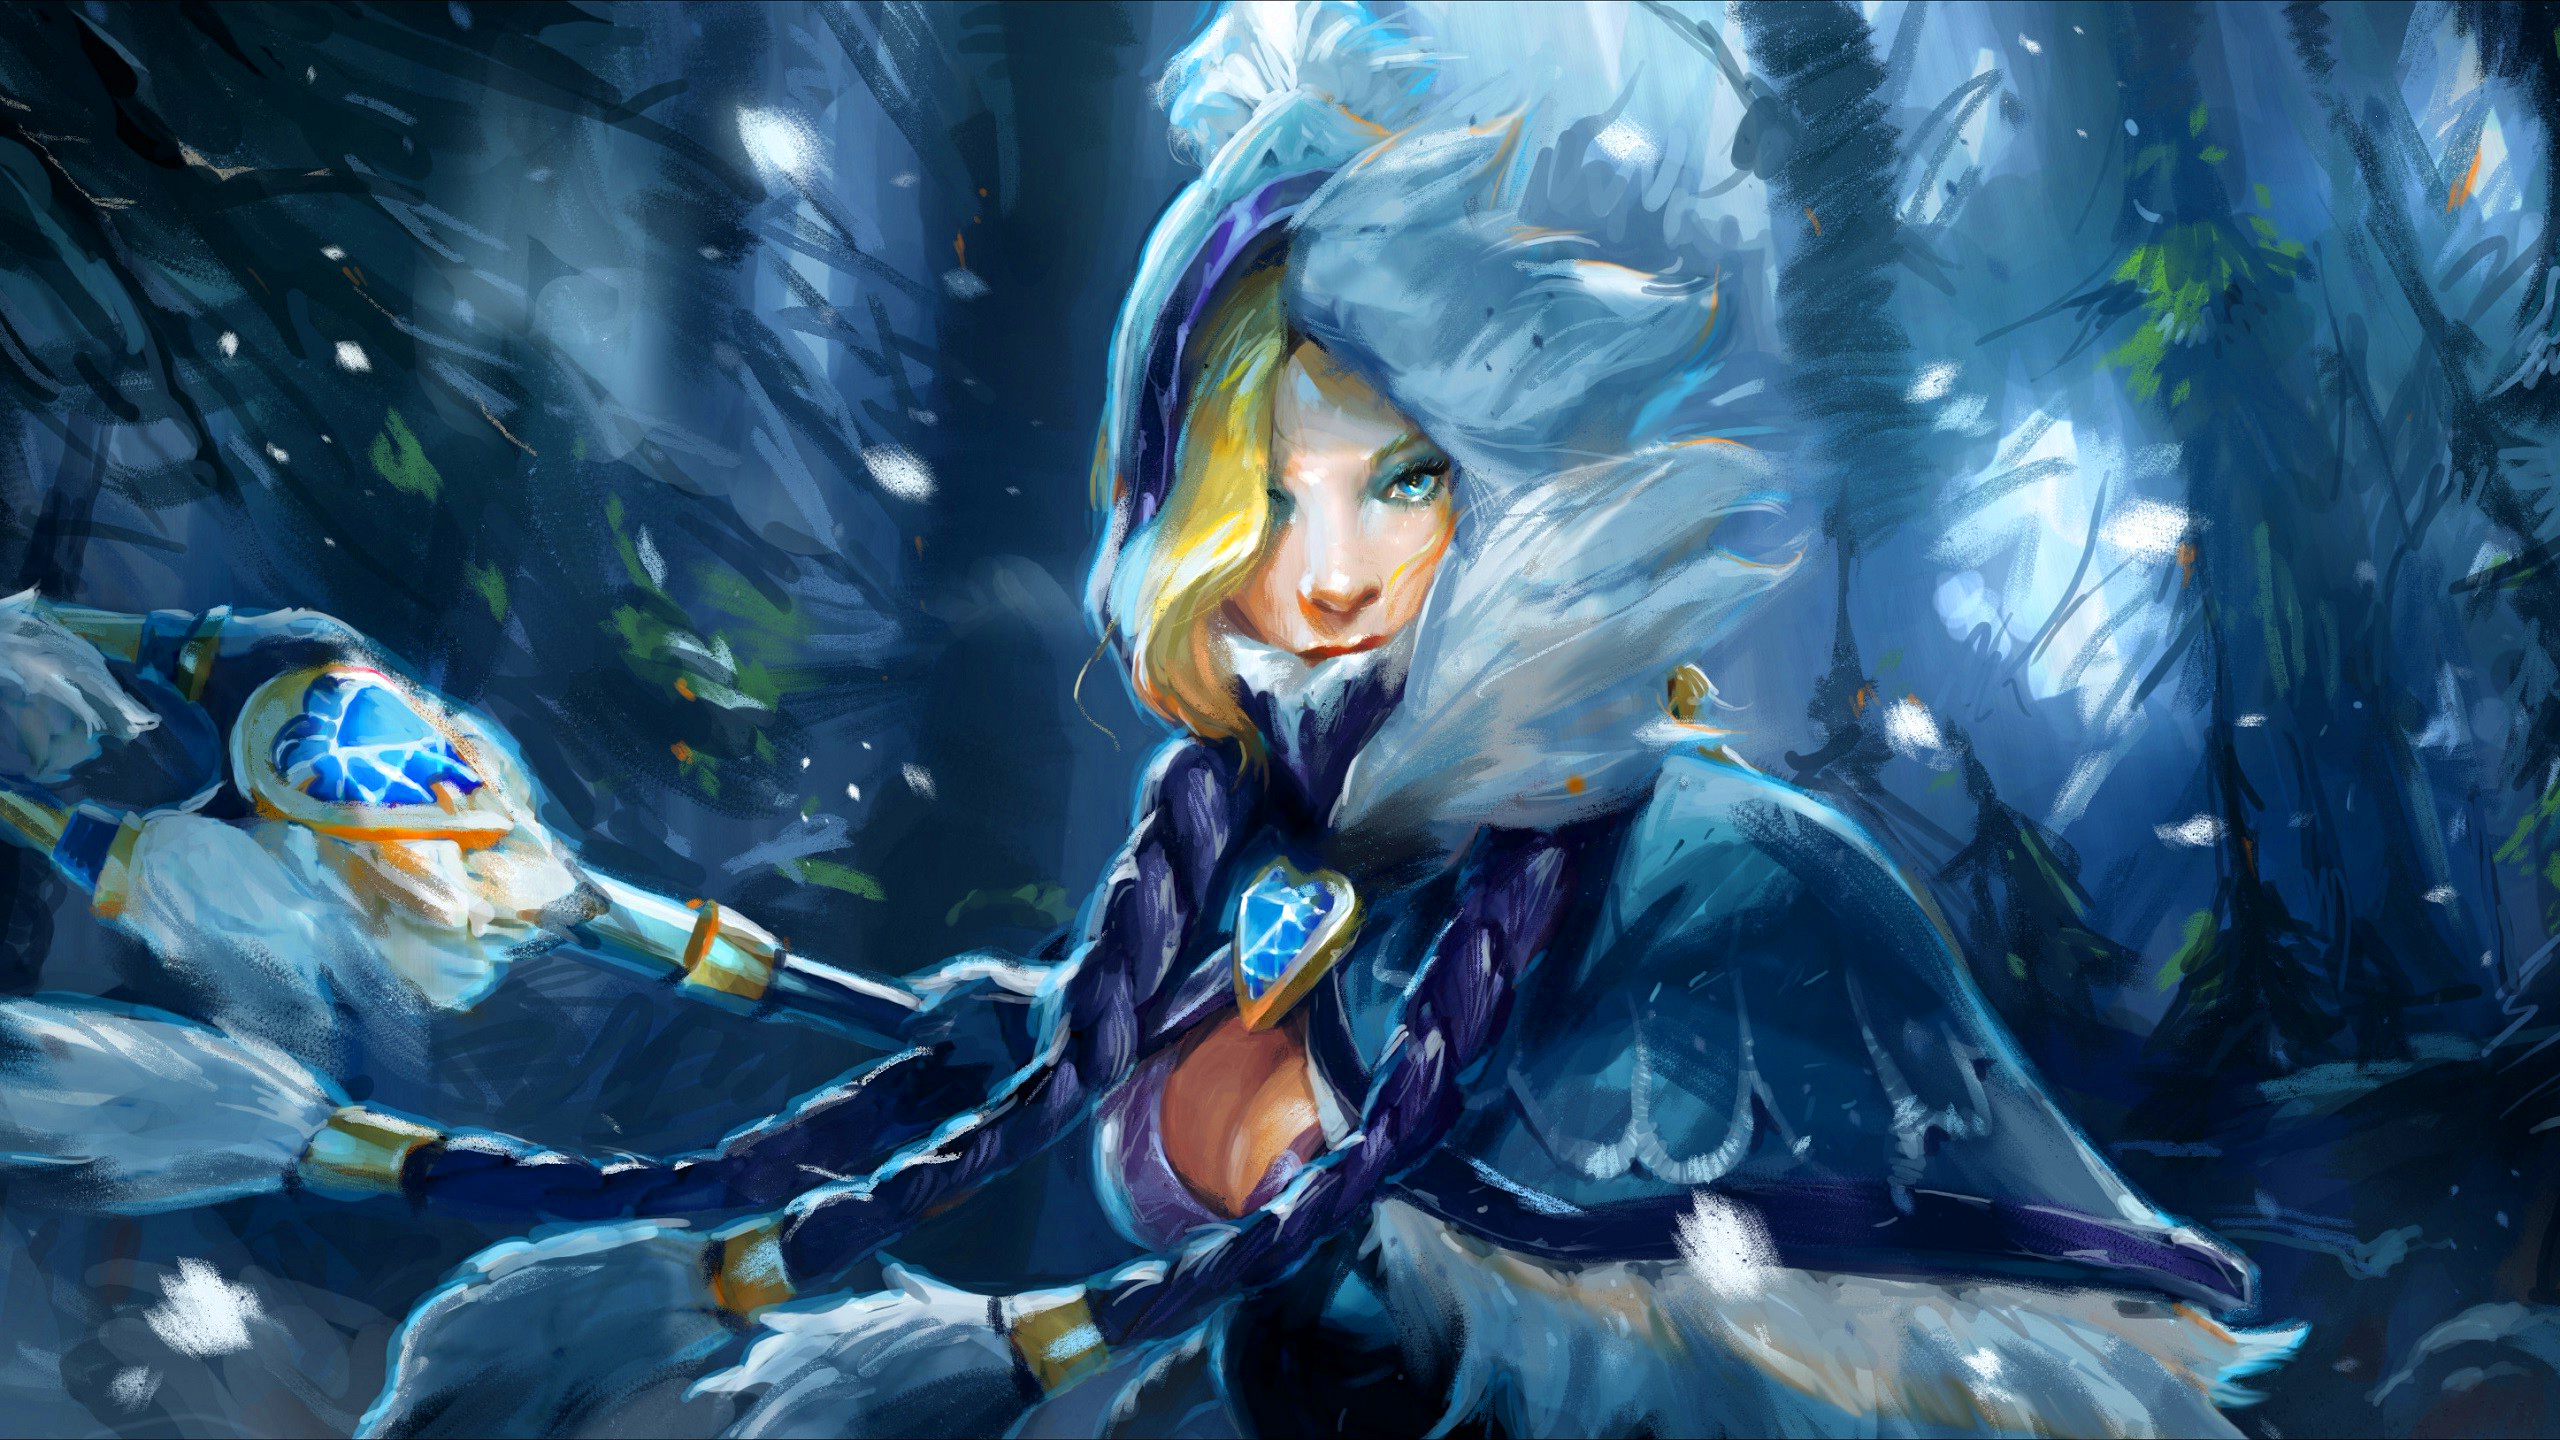 dota 2 wallpaper free download